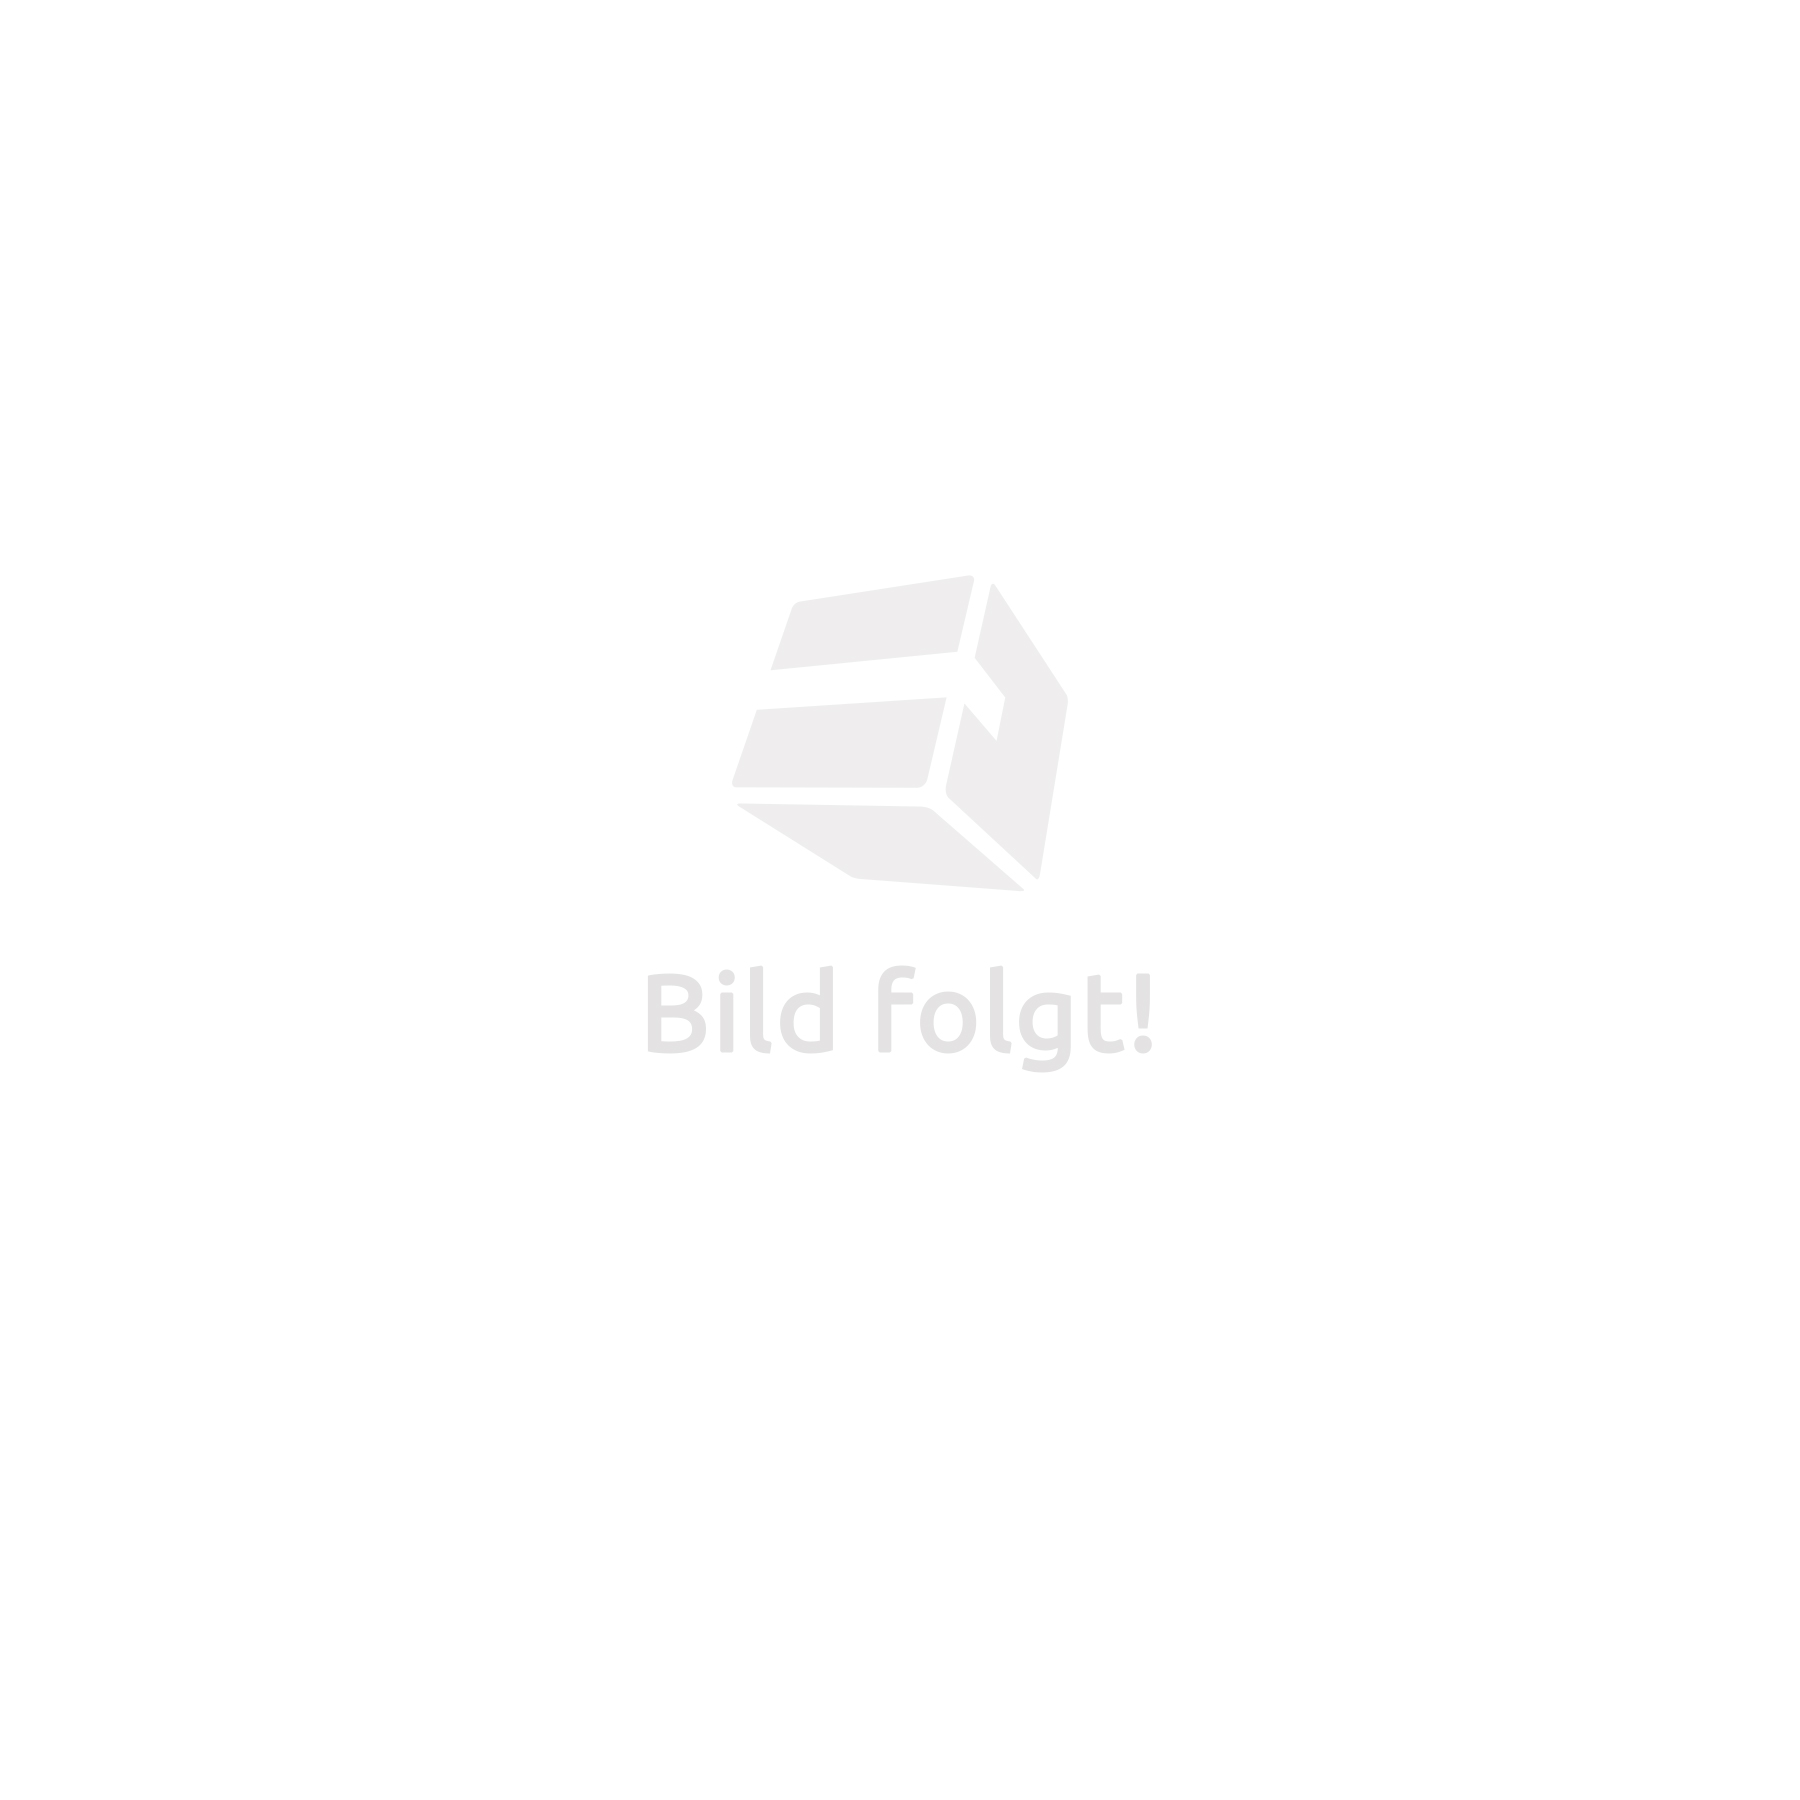 armoire de rangement en tissu triple v tements dressing penderie avec tringle ebay. Black Bedroom Furniture Sets. Home Design Ideas